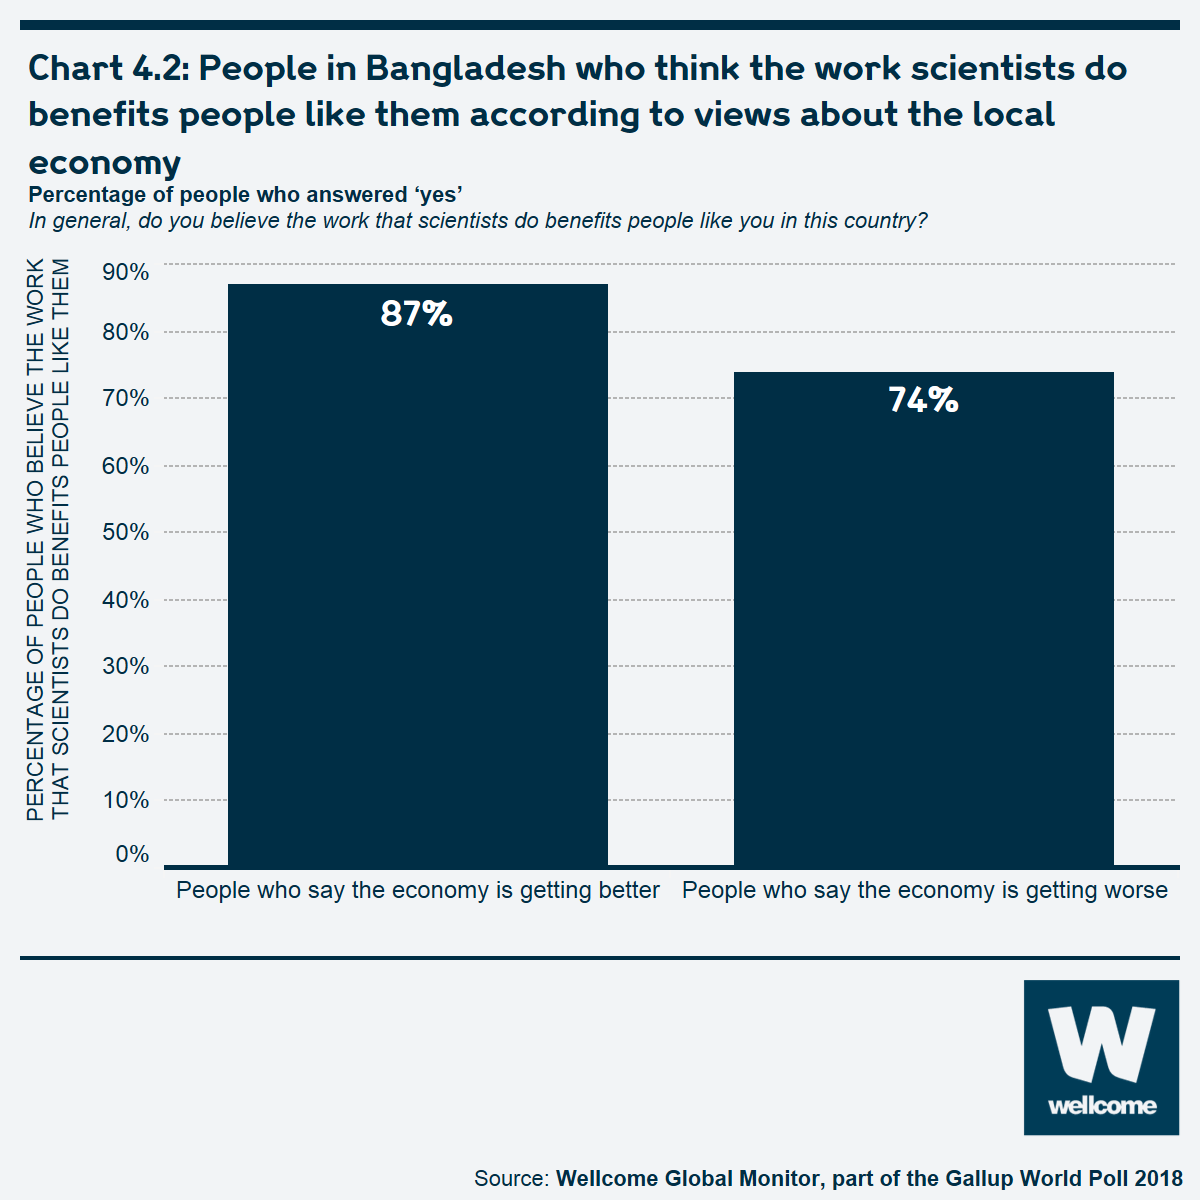 Chart 4.2 People in Bangladesh who think the work scientists do benefits people like them according to views about the local economy